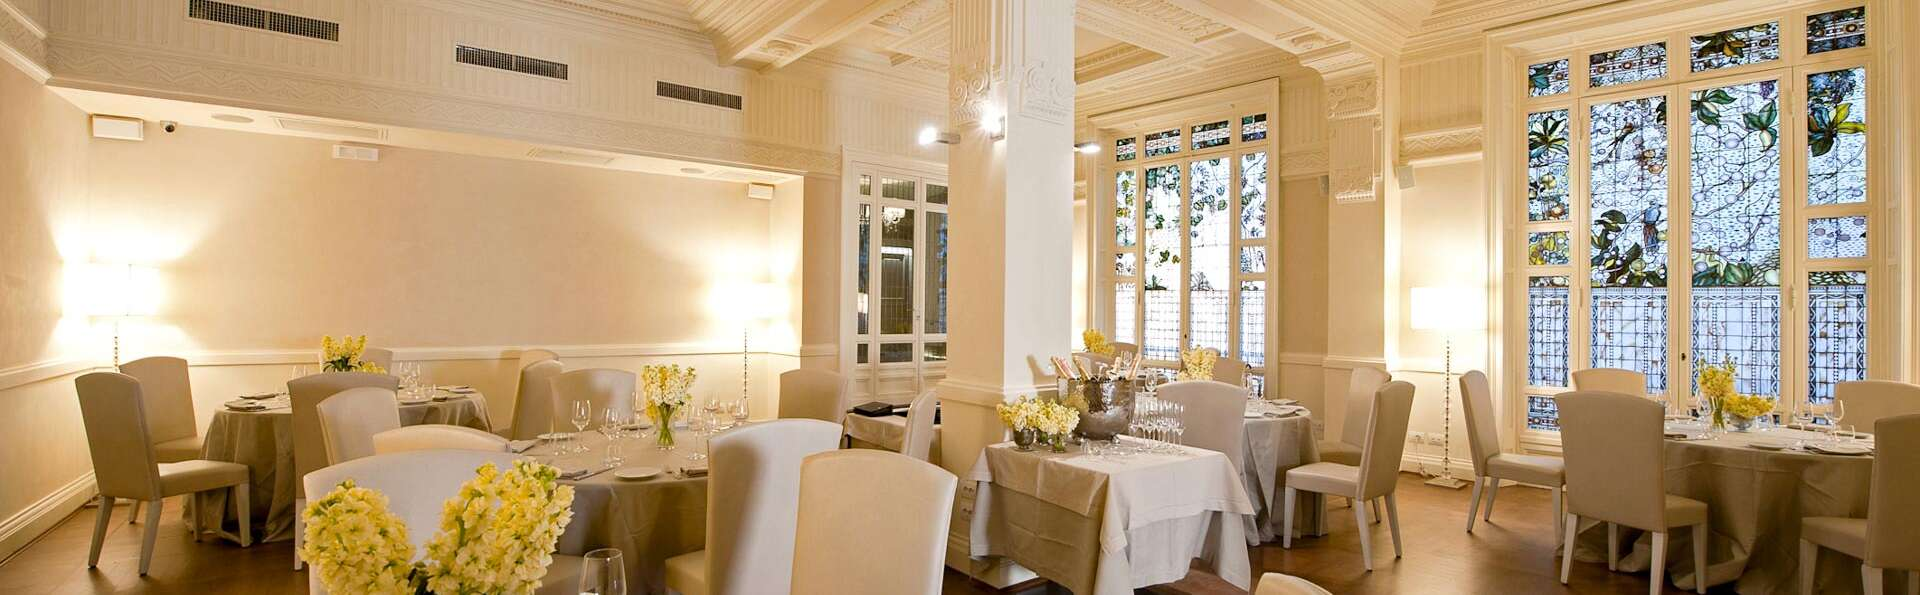 Hotel Brunelleschi - EDIT_RESTAURANT_01.jpg